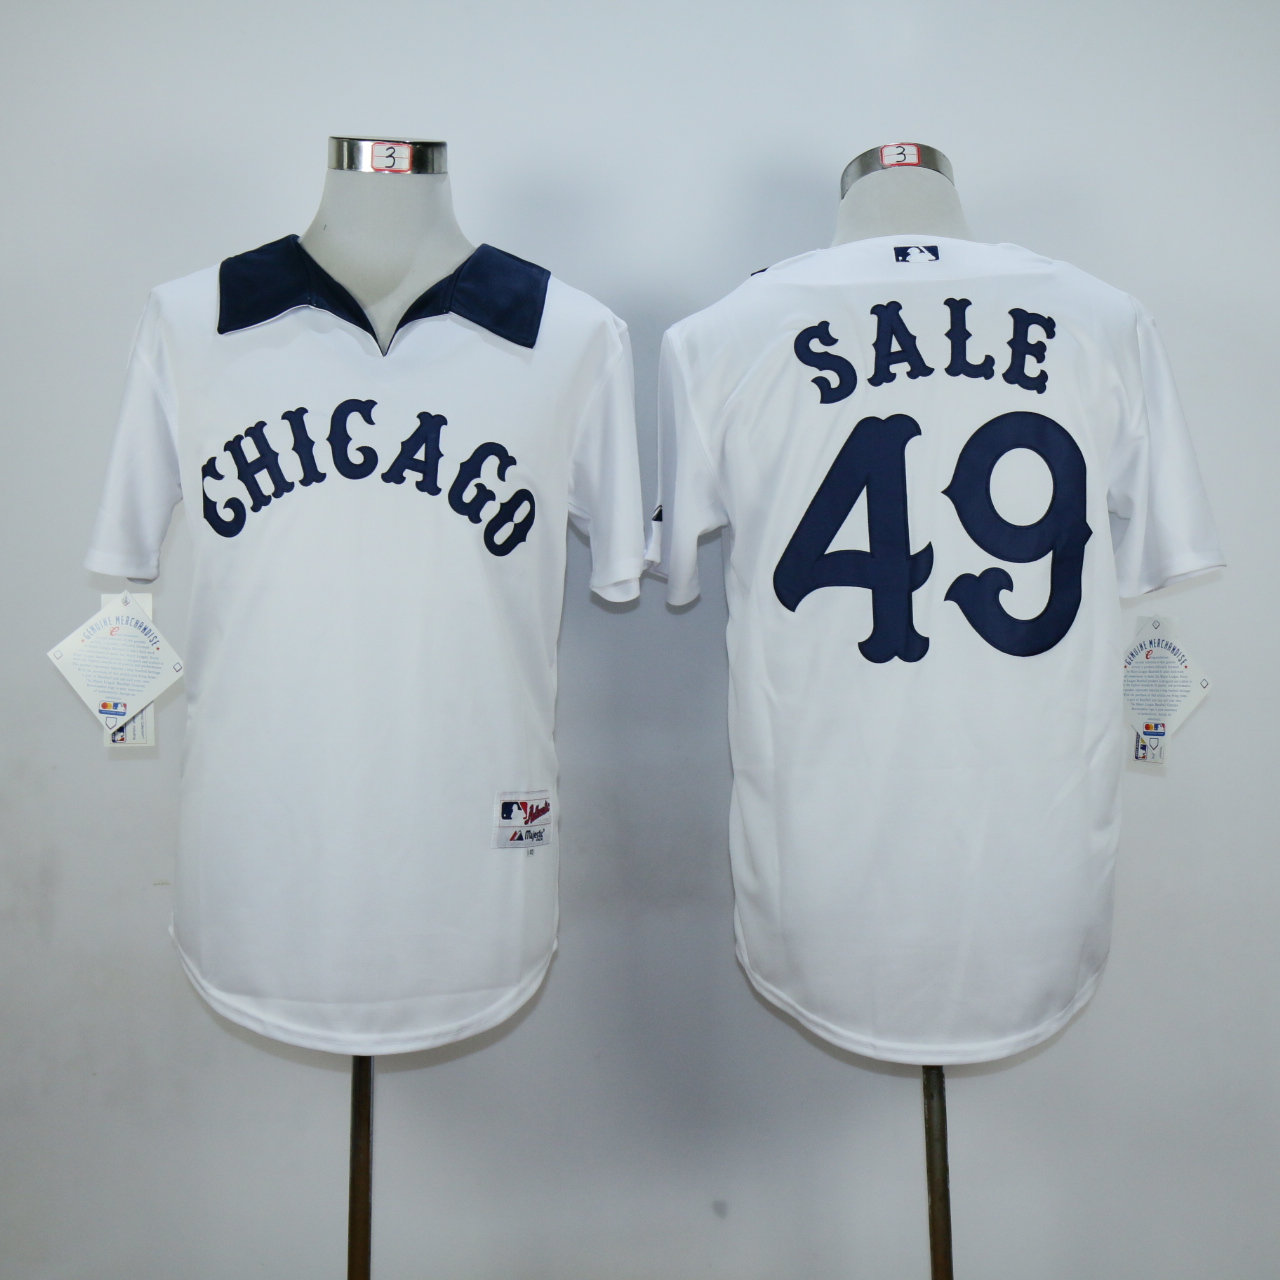 MLB Chicago White Sox 49 Chris Sale White Jersey